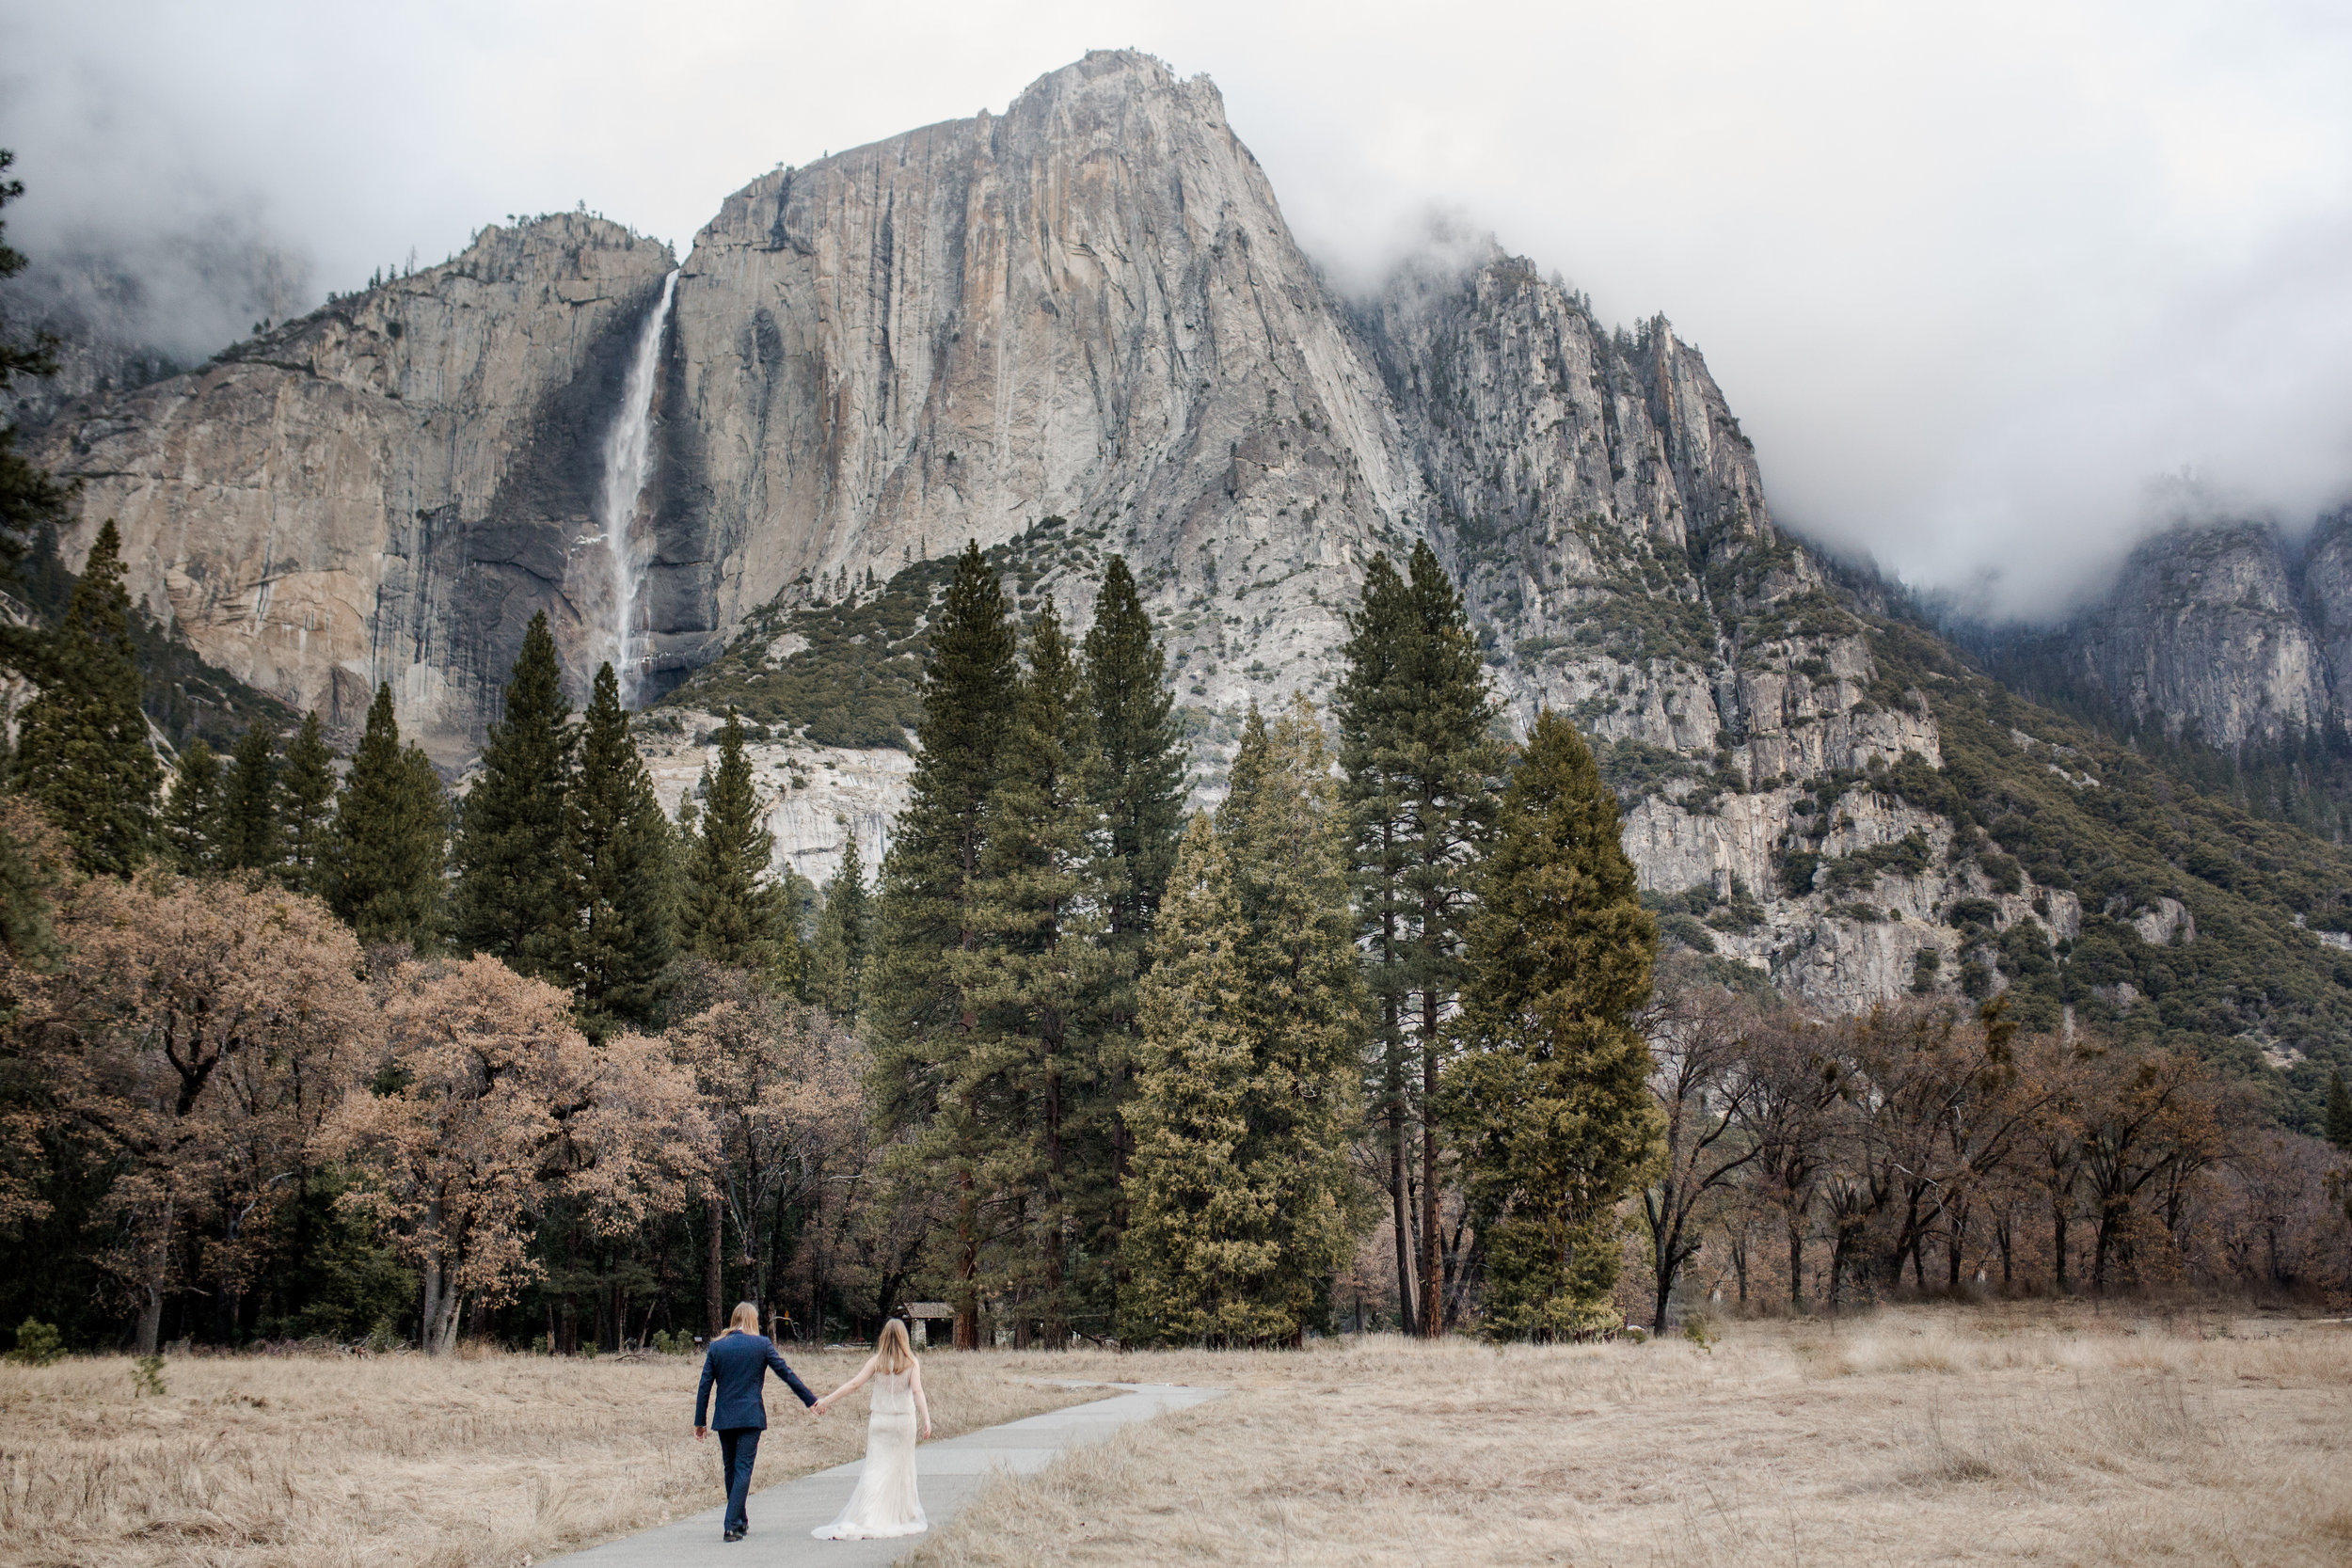 nicole-daacke-photography-yousemite-national-park-elopement-photographer-winter-cloud-moody-elope-inspiration-yosemite-valley-tunnel-view-winter-cloud-fog-weather-wedding-photos-22.jpg